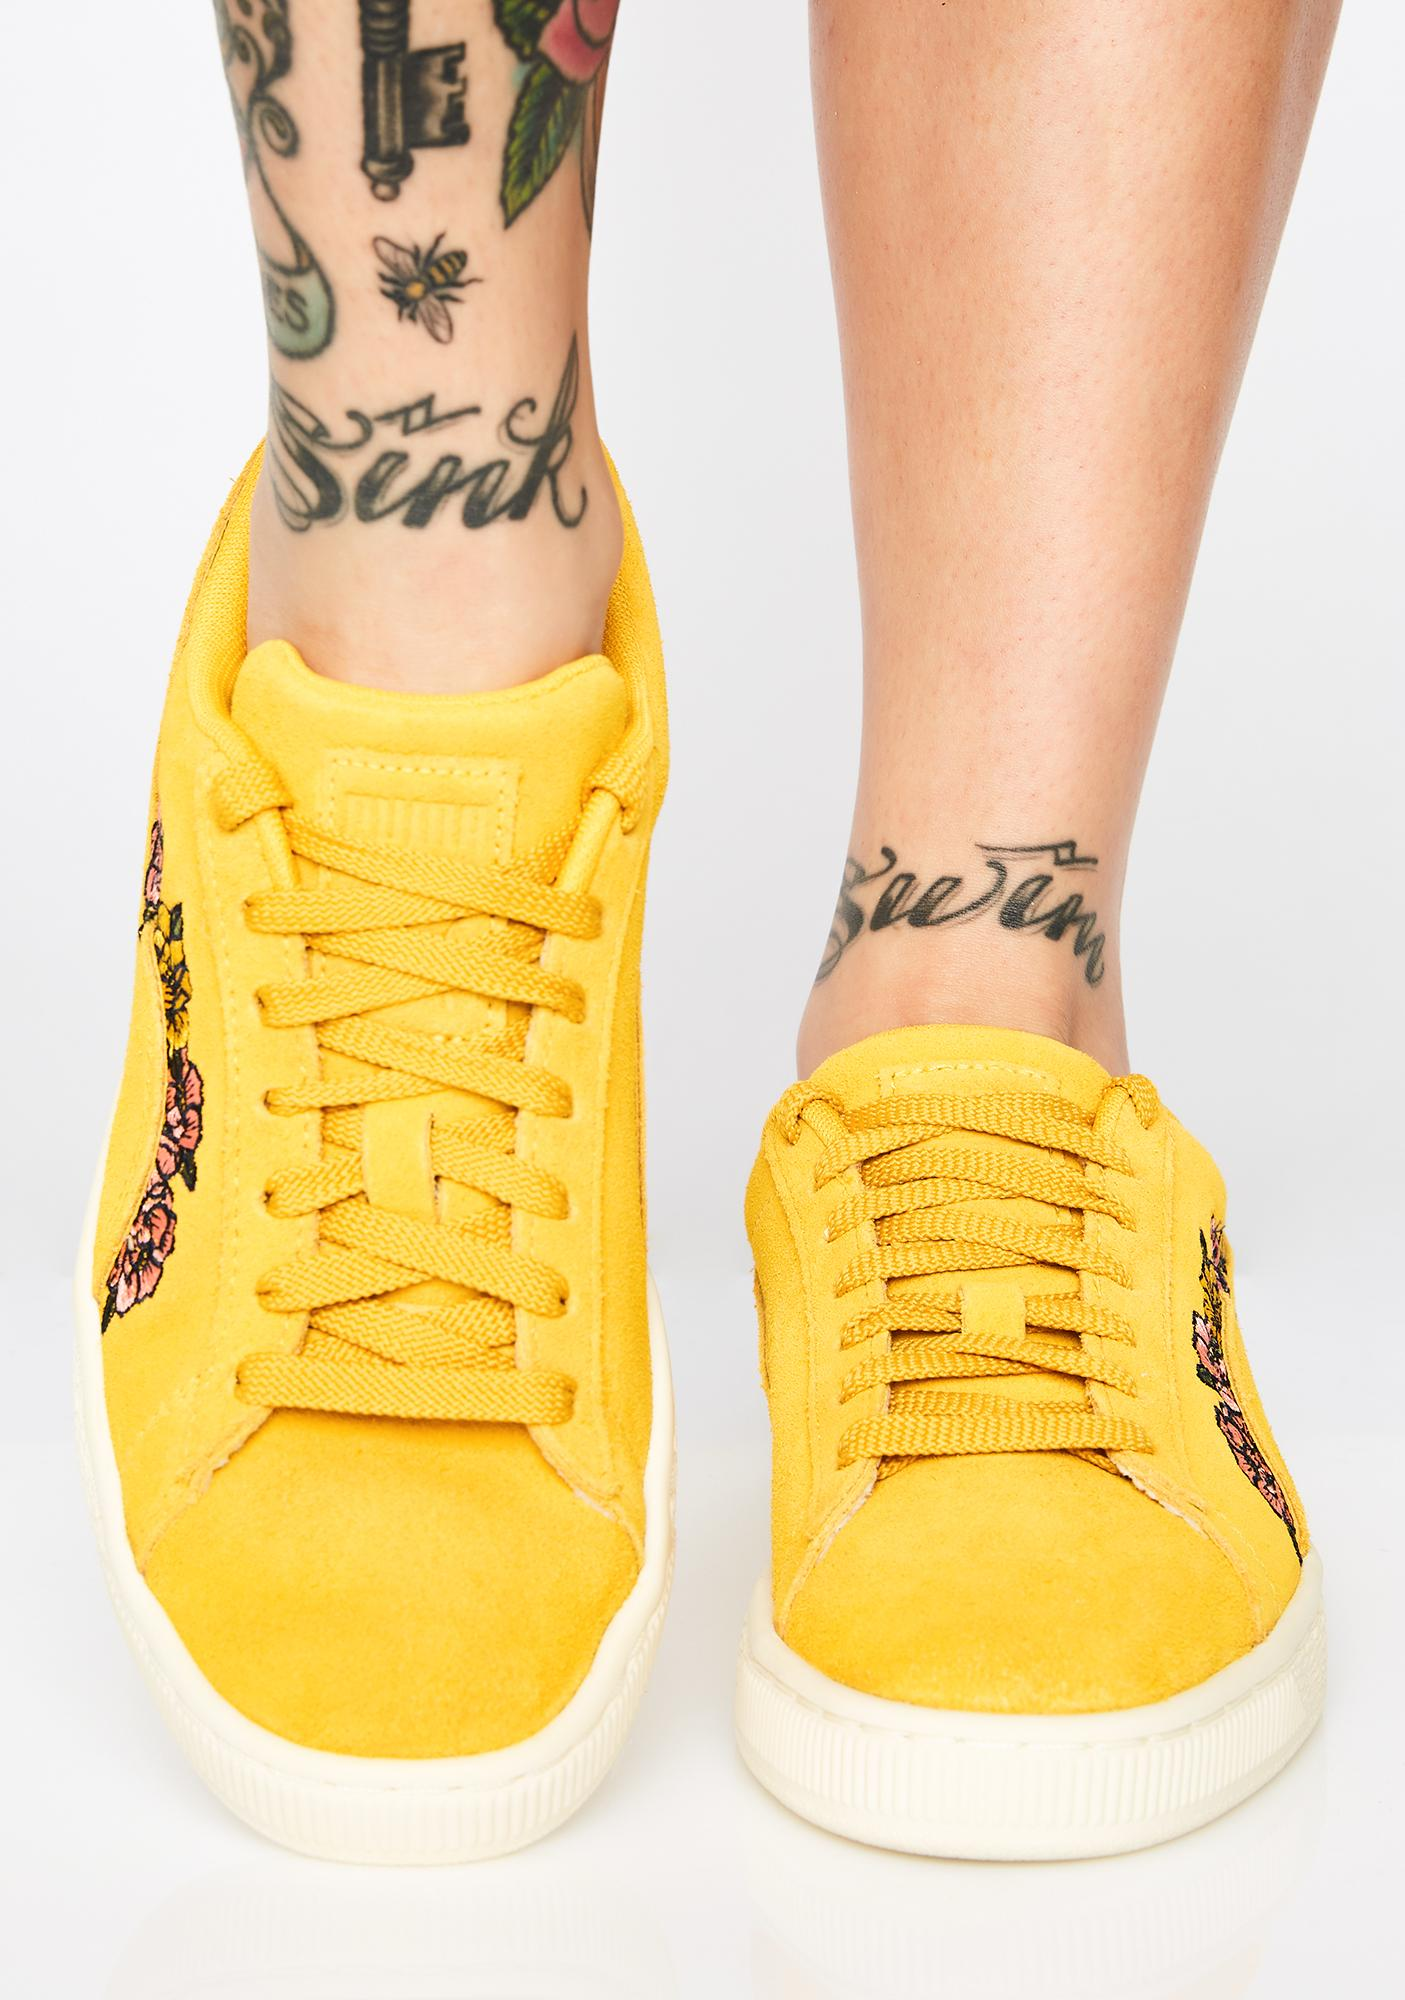 PUMA Suede Tol Embroidery Sneakers